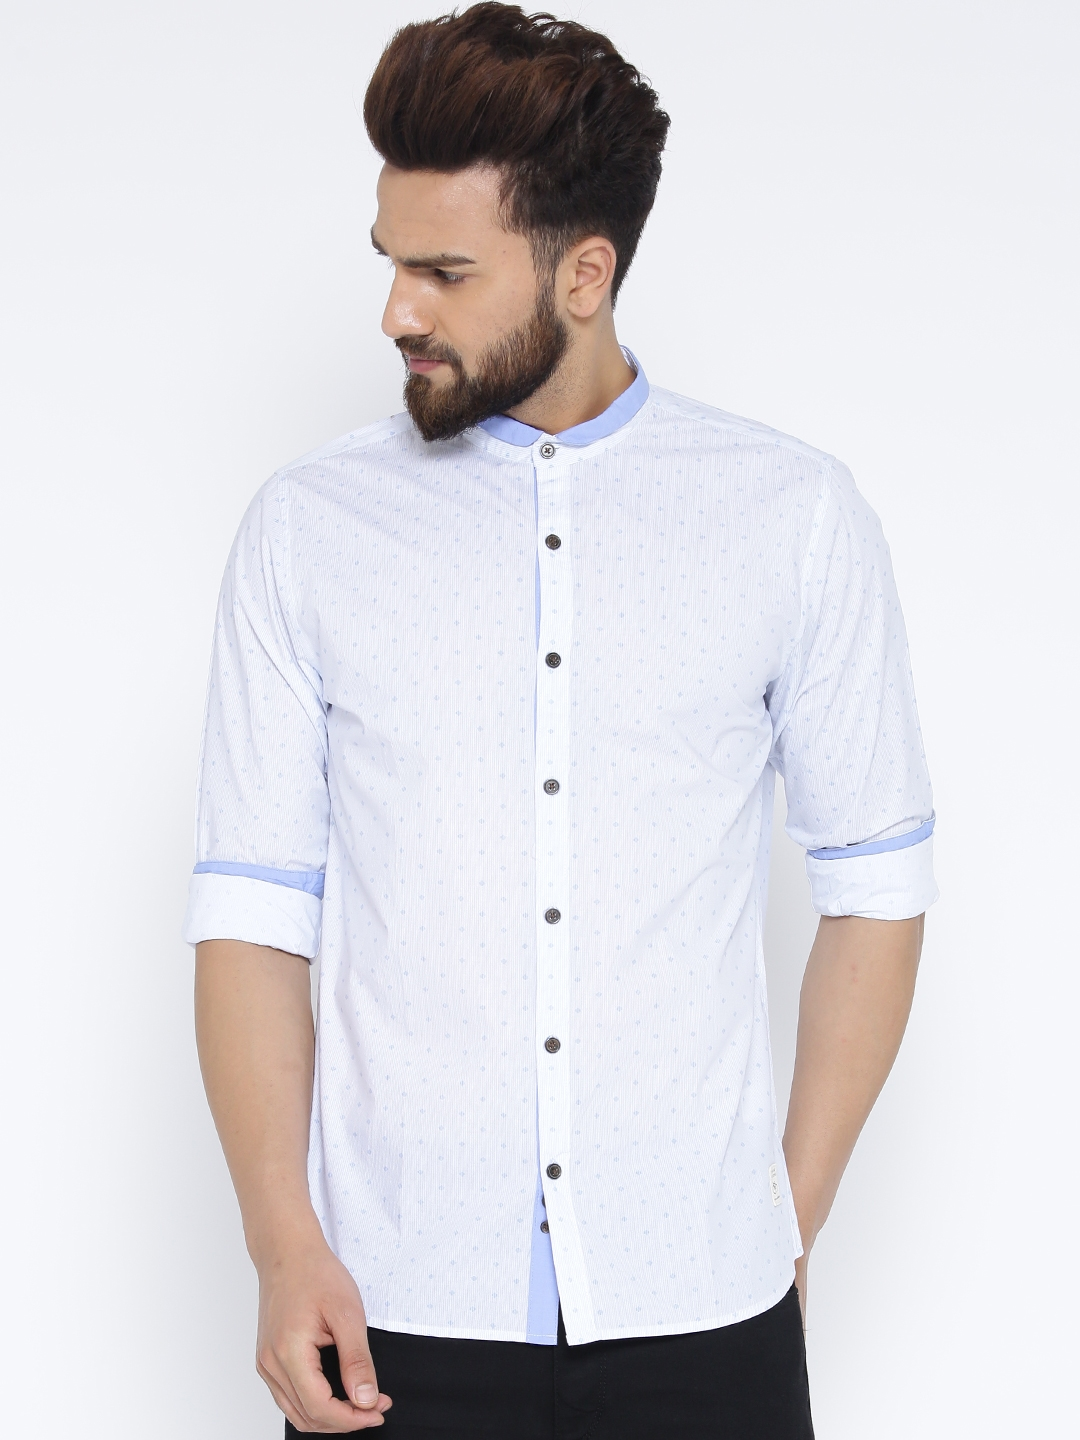 United Colors of Benetton Light Blue Printed Casual Shirt